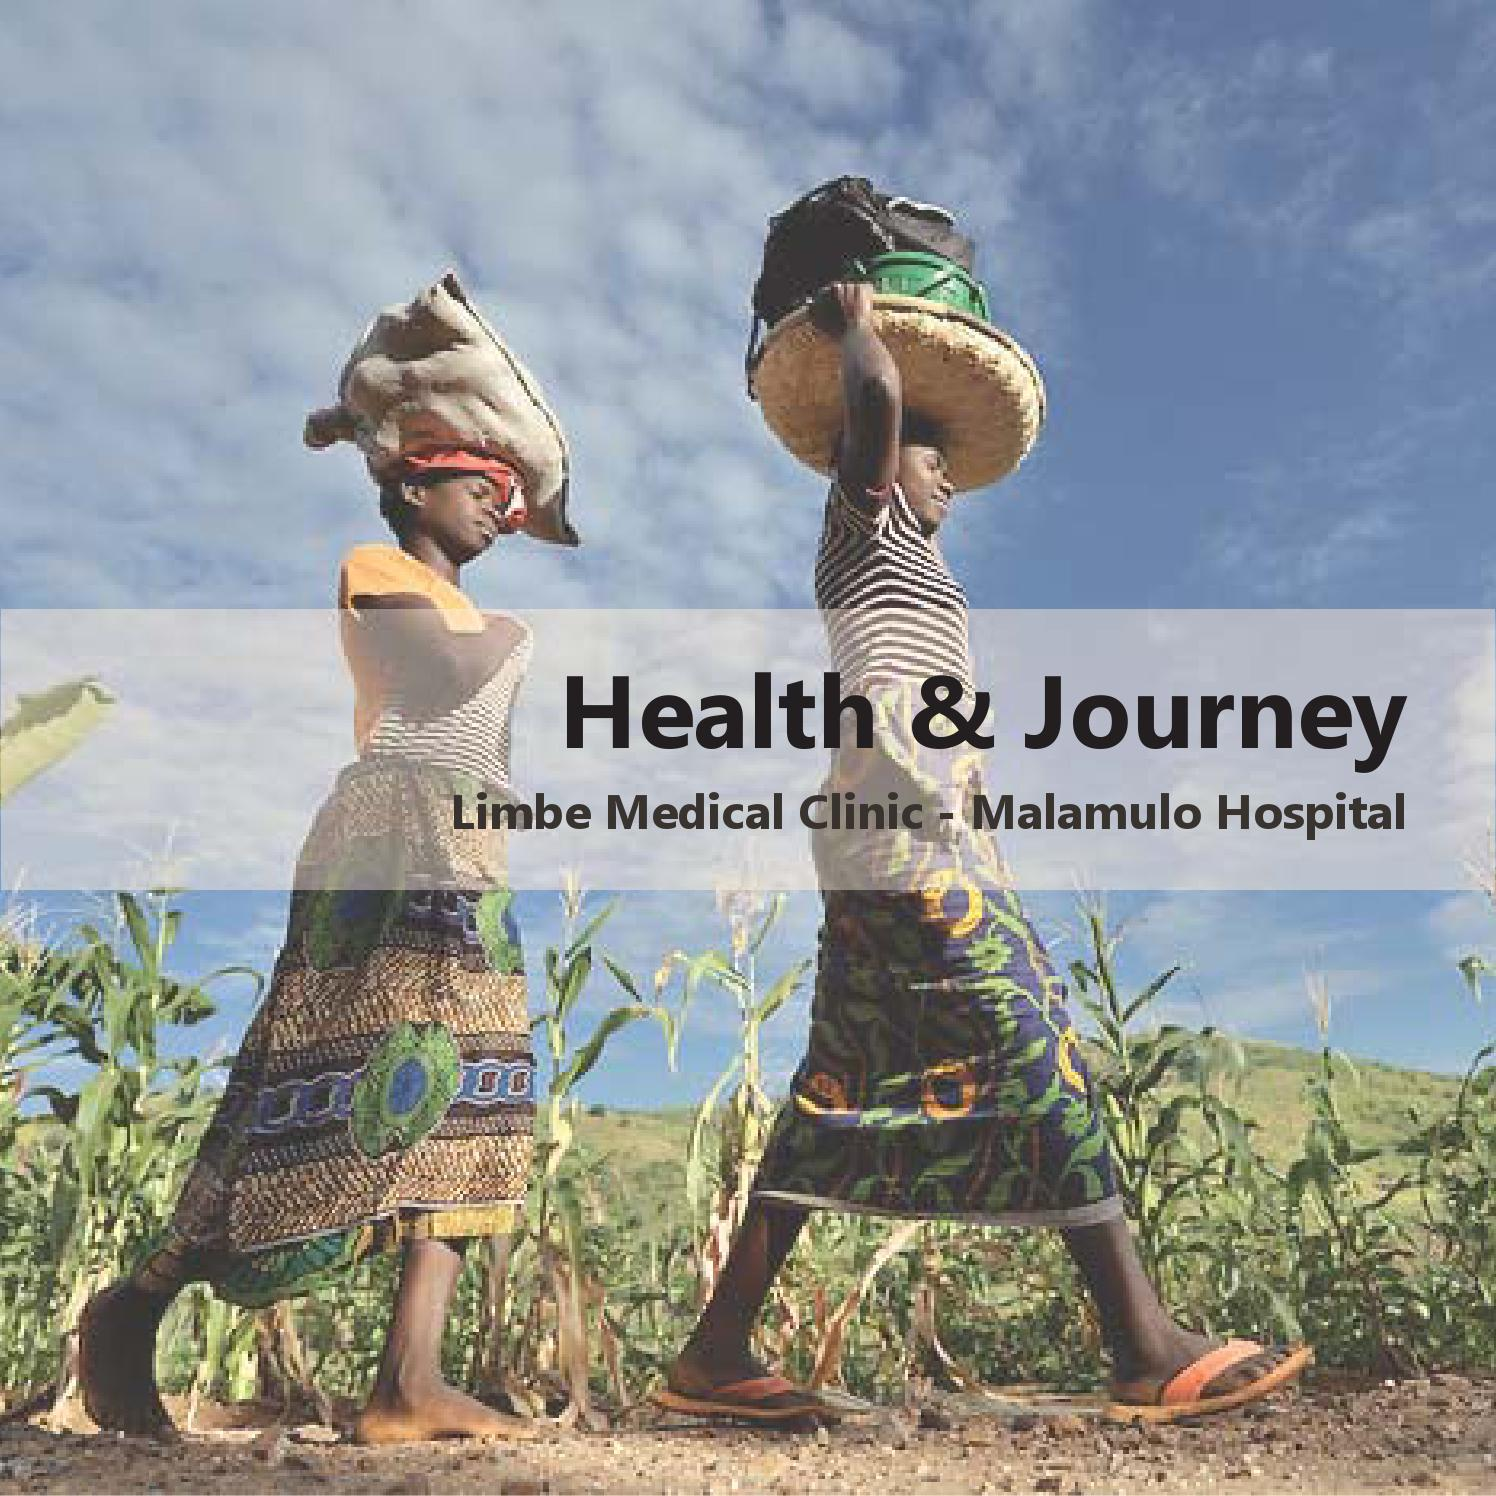 Limbe Medical Clinic - Health & Journey by Savanah Krause